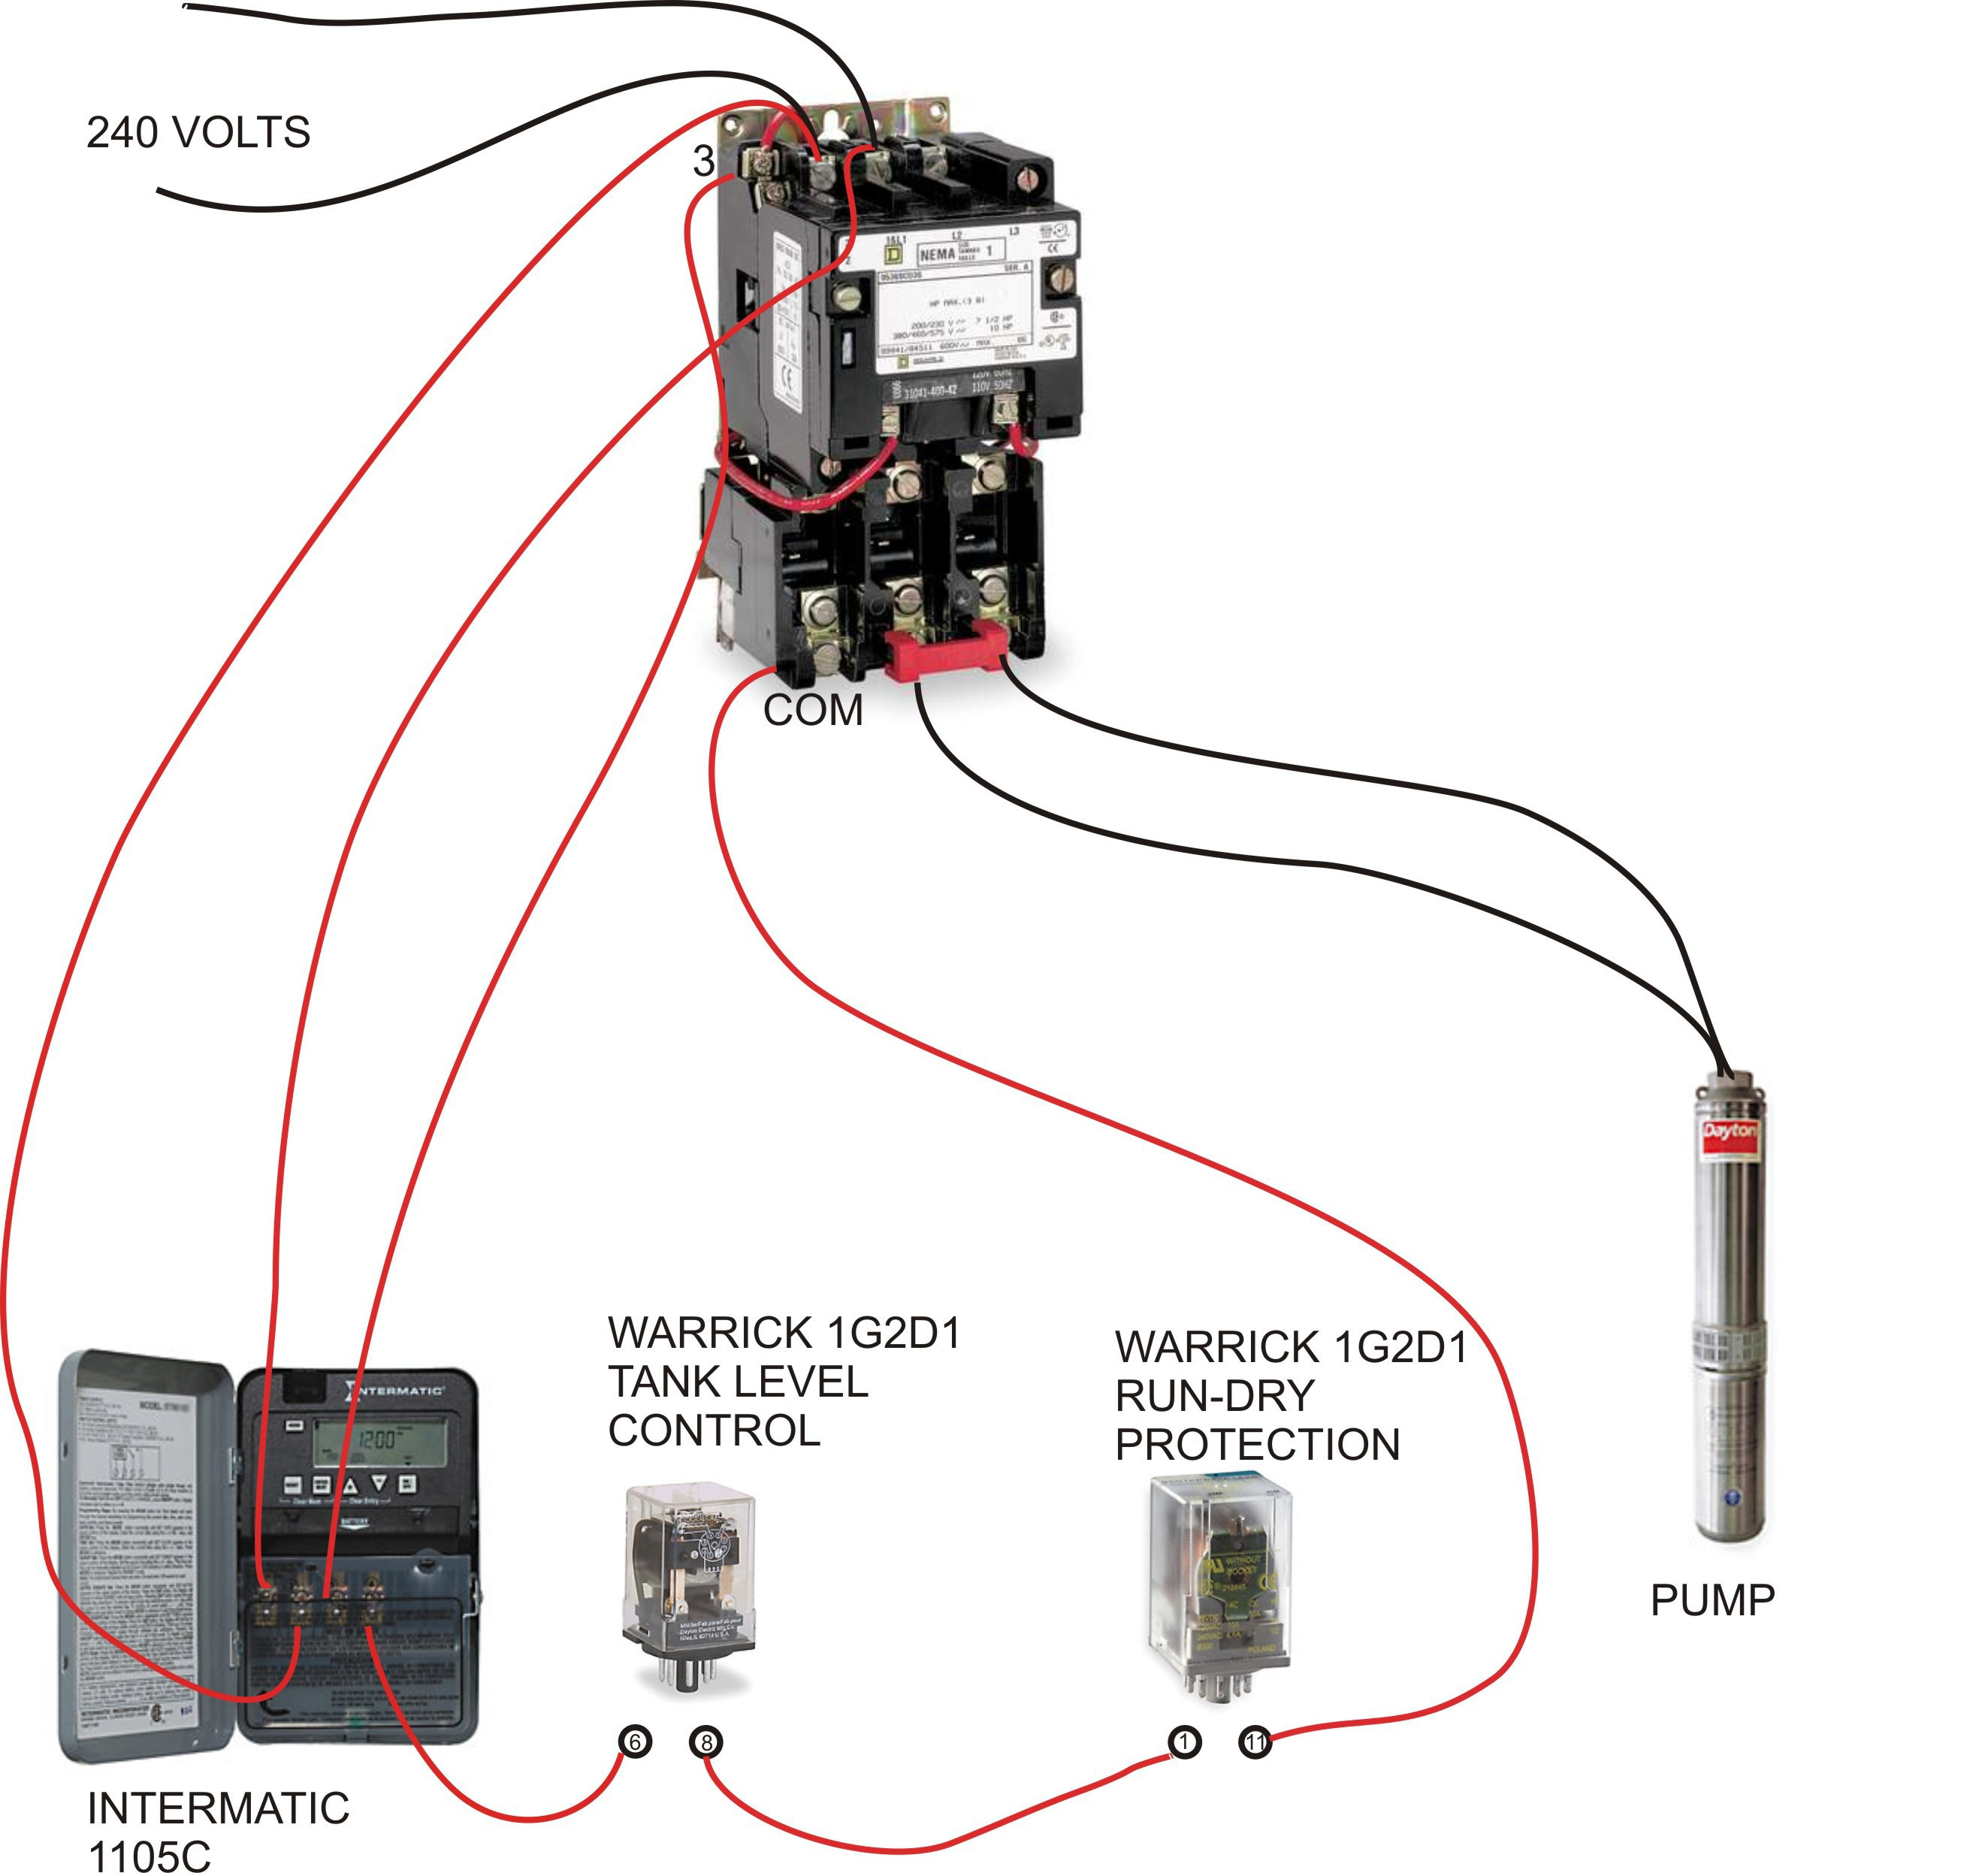 Rain Bird Pump Start Relay Wiring Diagram from wholefoodsonabudget.com